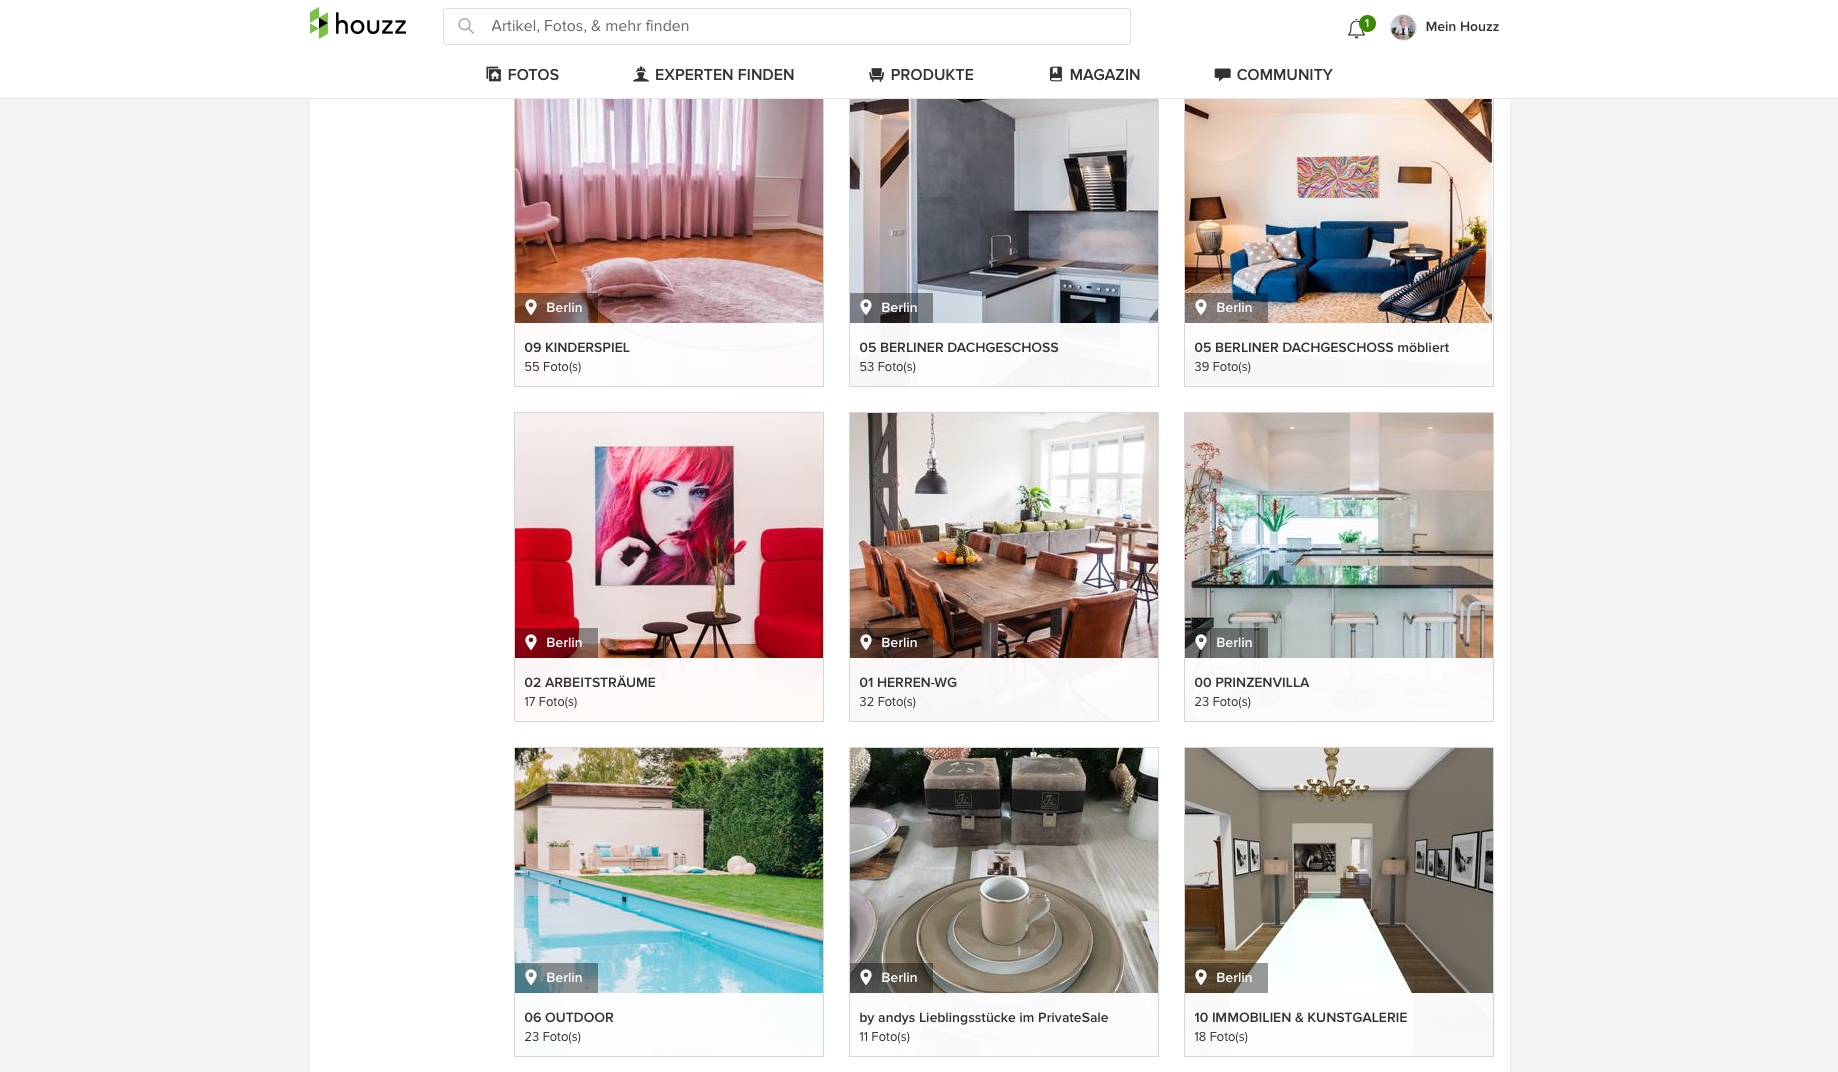 houzz_byandy2018 | by andy - for better moods